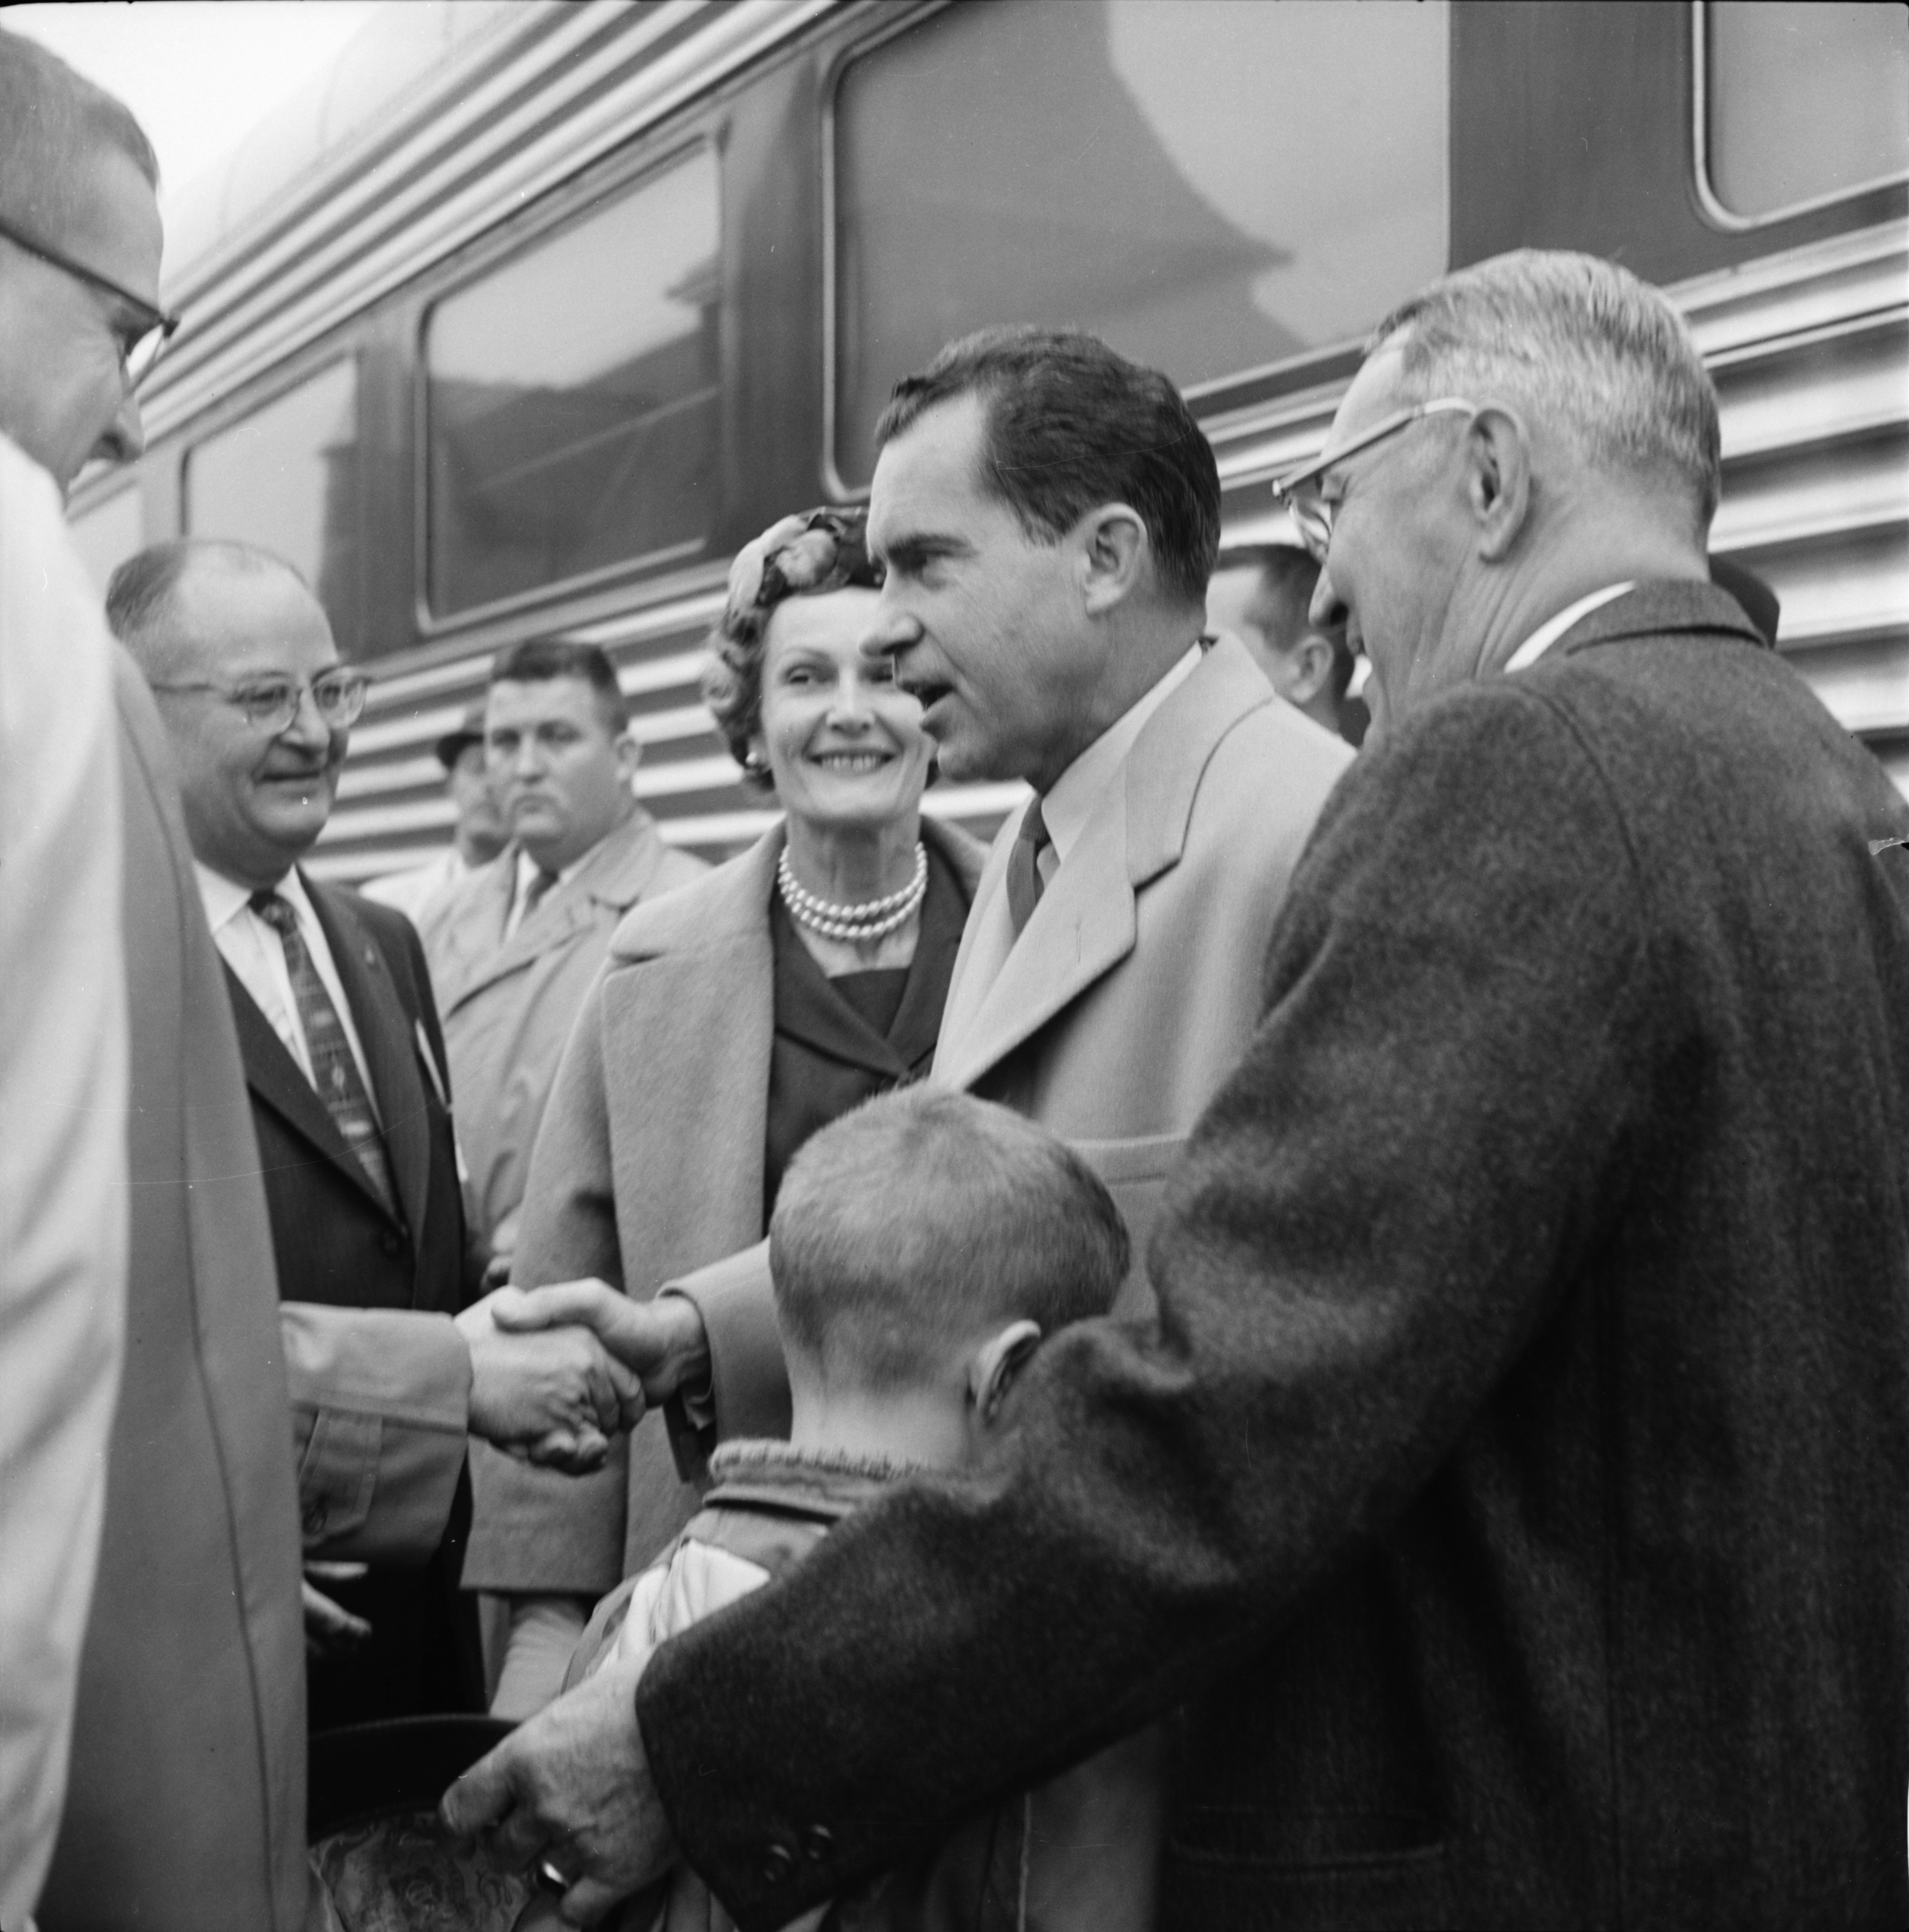 Presidential candidate Richard Nixon shakes hands during Ann Arbor visit, October 27, 1960 image